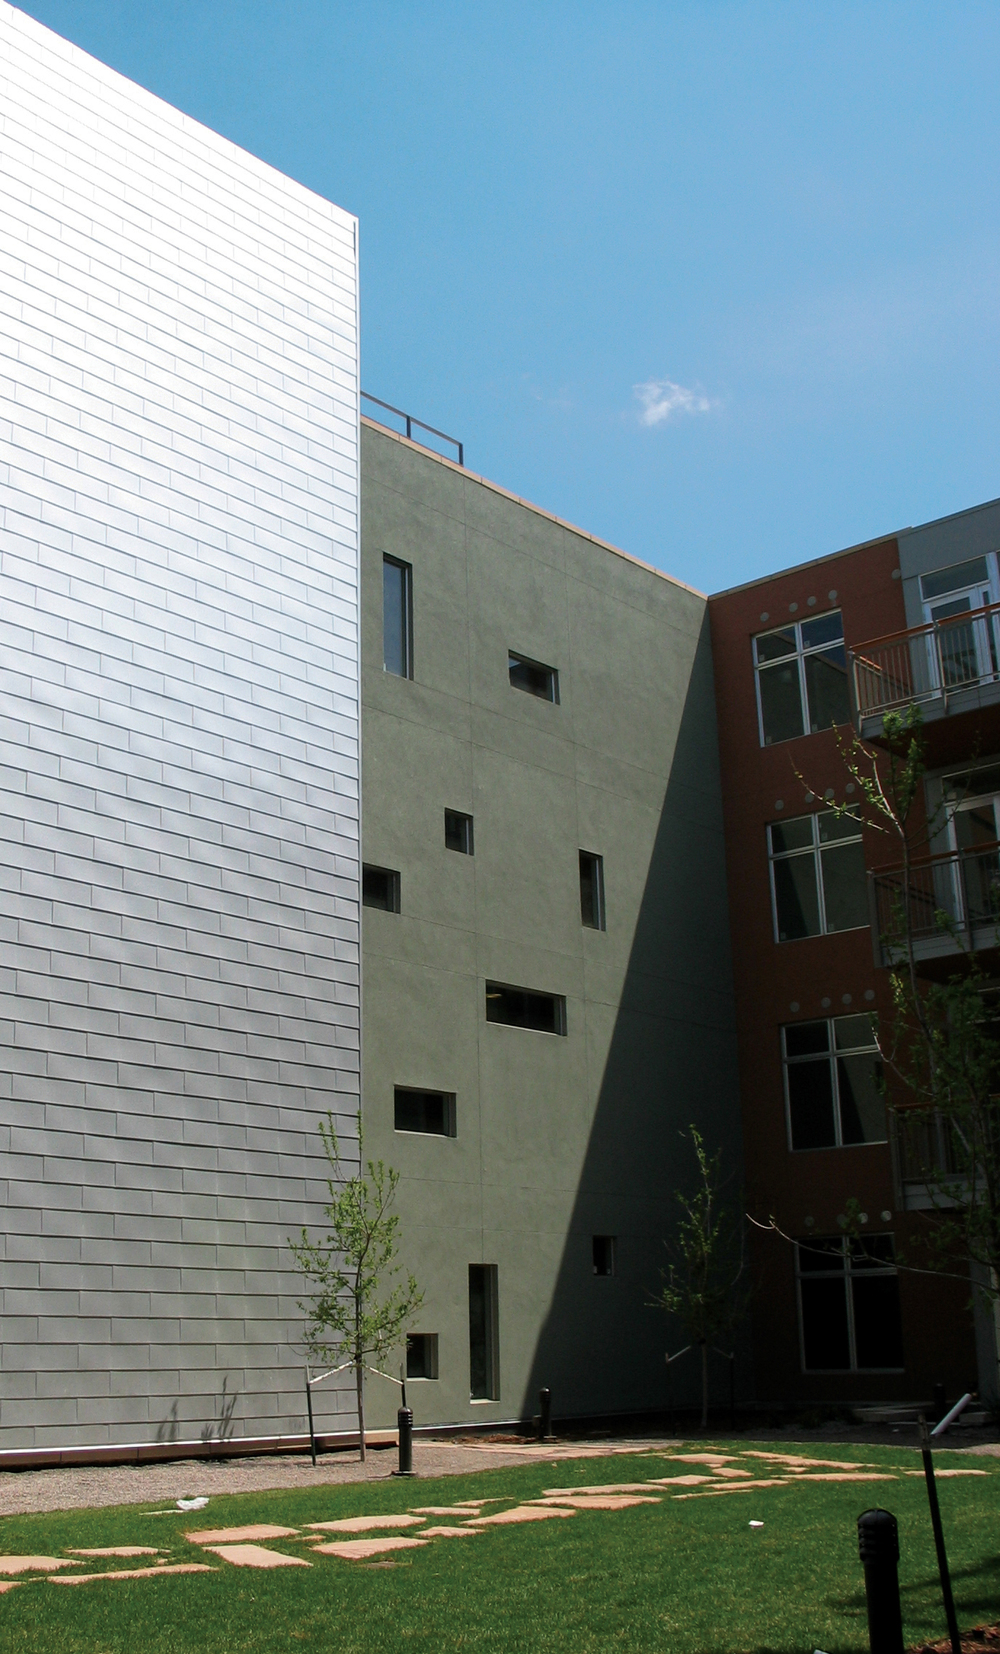 delgany_lofts_denver_siding_detail.jpg